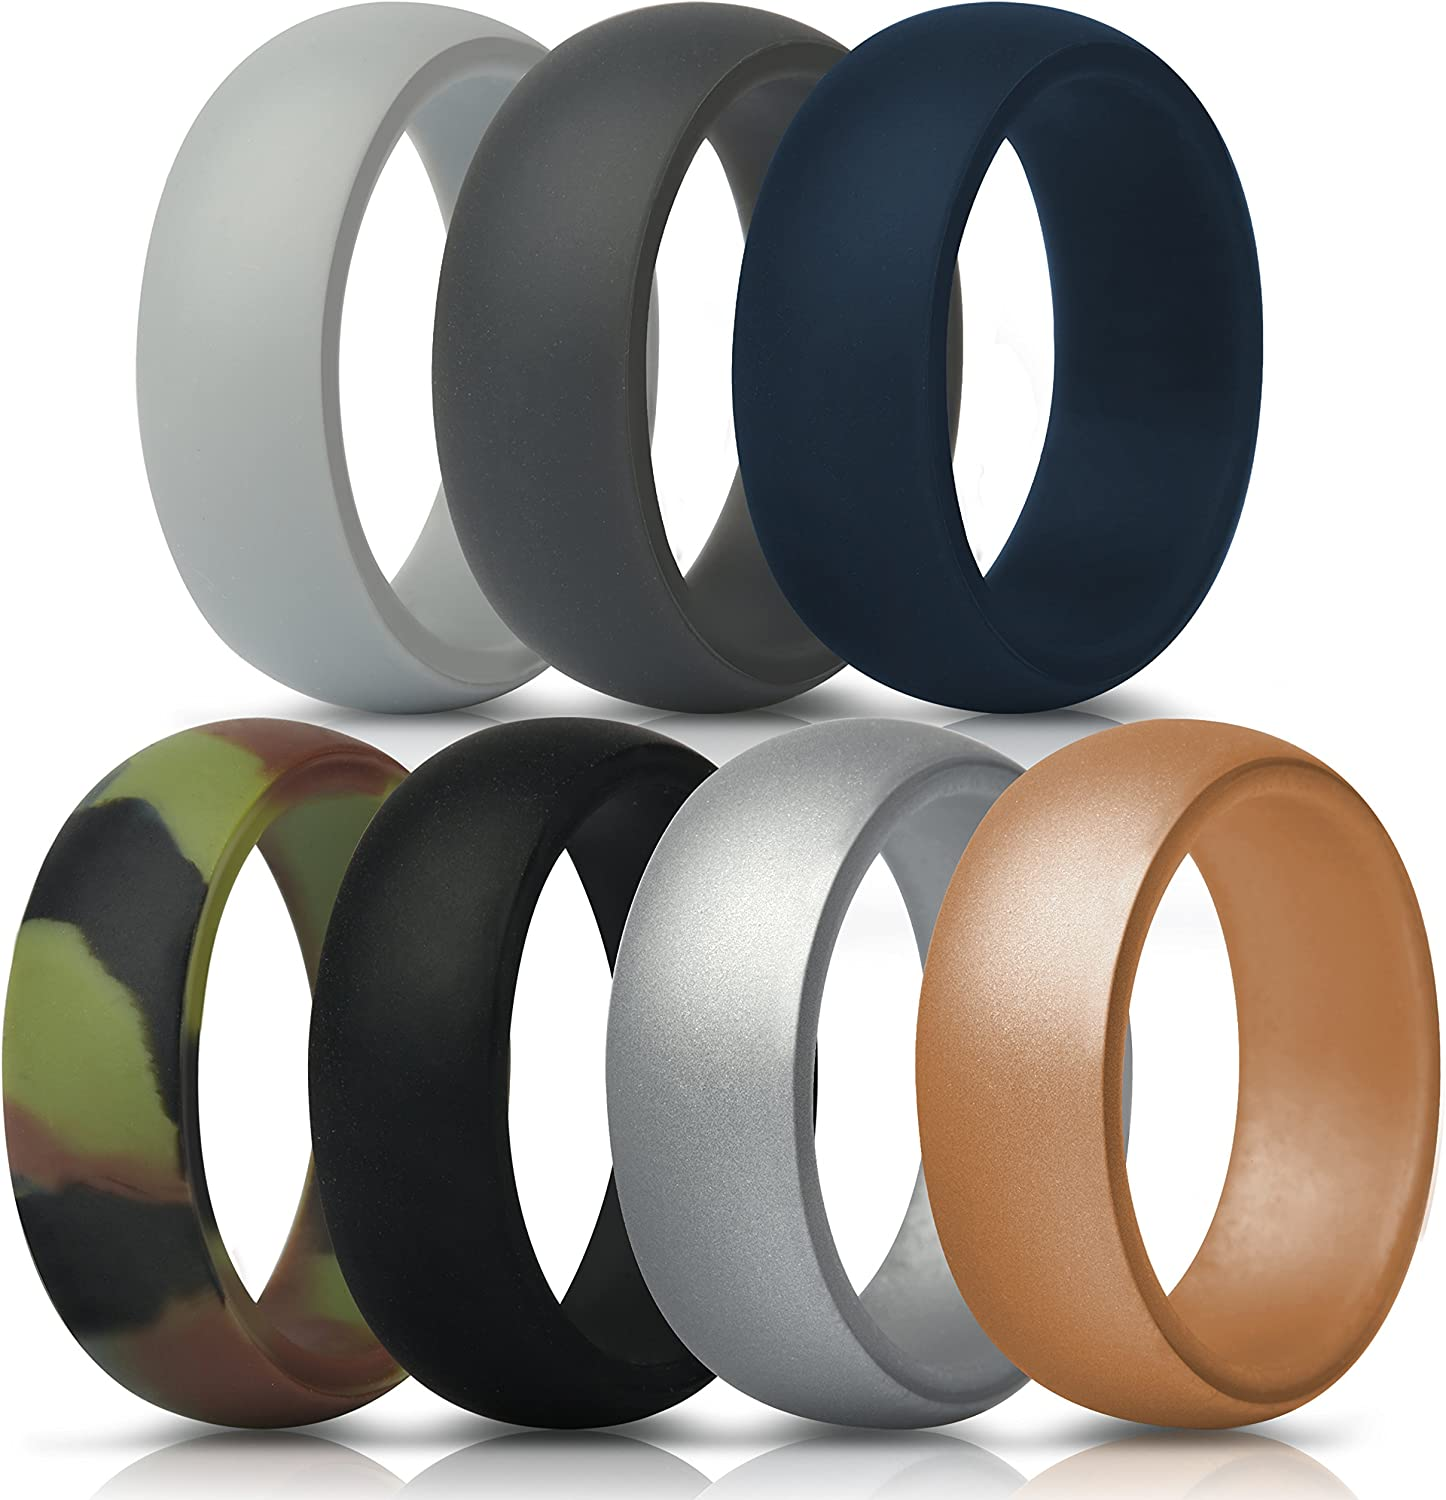 7 Rings // 4 Rings // 1 Ring 8.2mm Width 2.5mm Thickness ThunderFit Silicone Wedding Rings for Men Engraved Middle Line Beveled Edge Rubber Engagement Bands Duo Collection